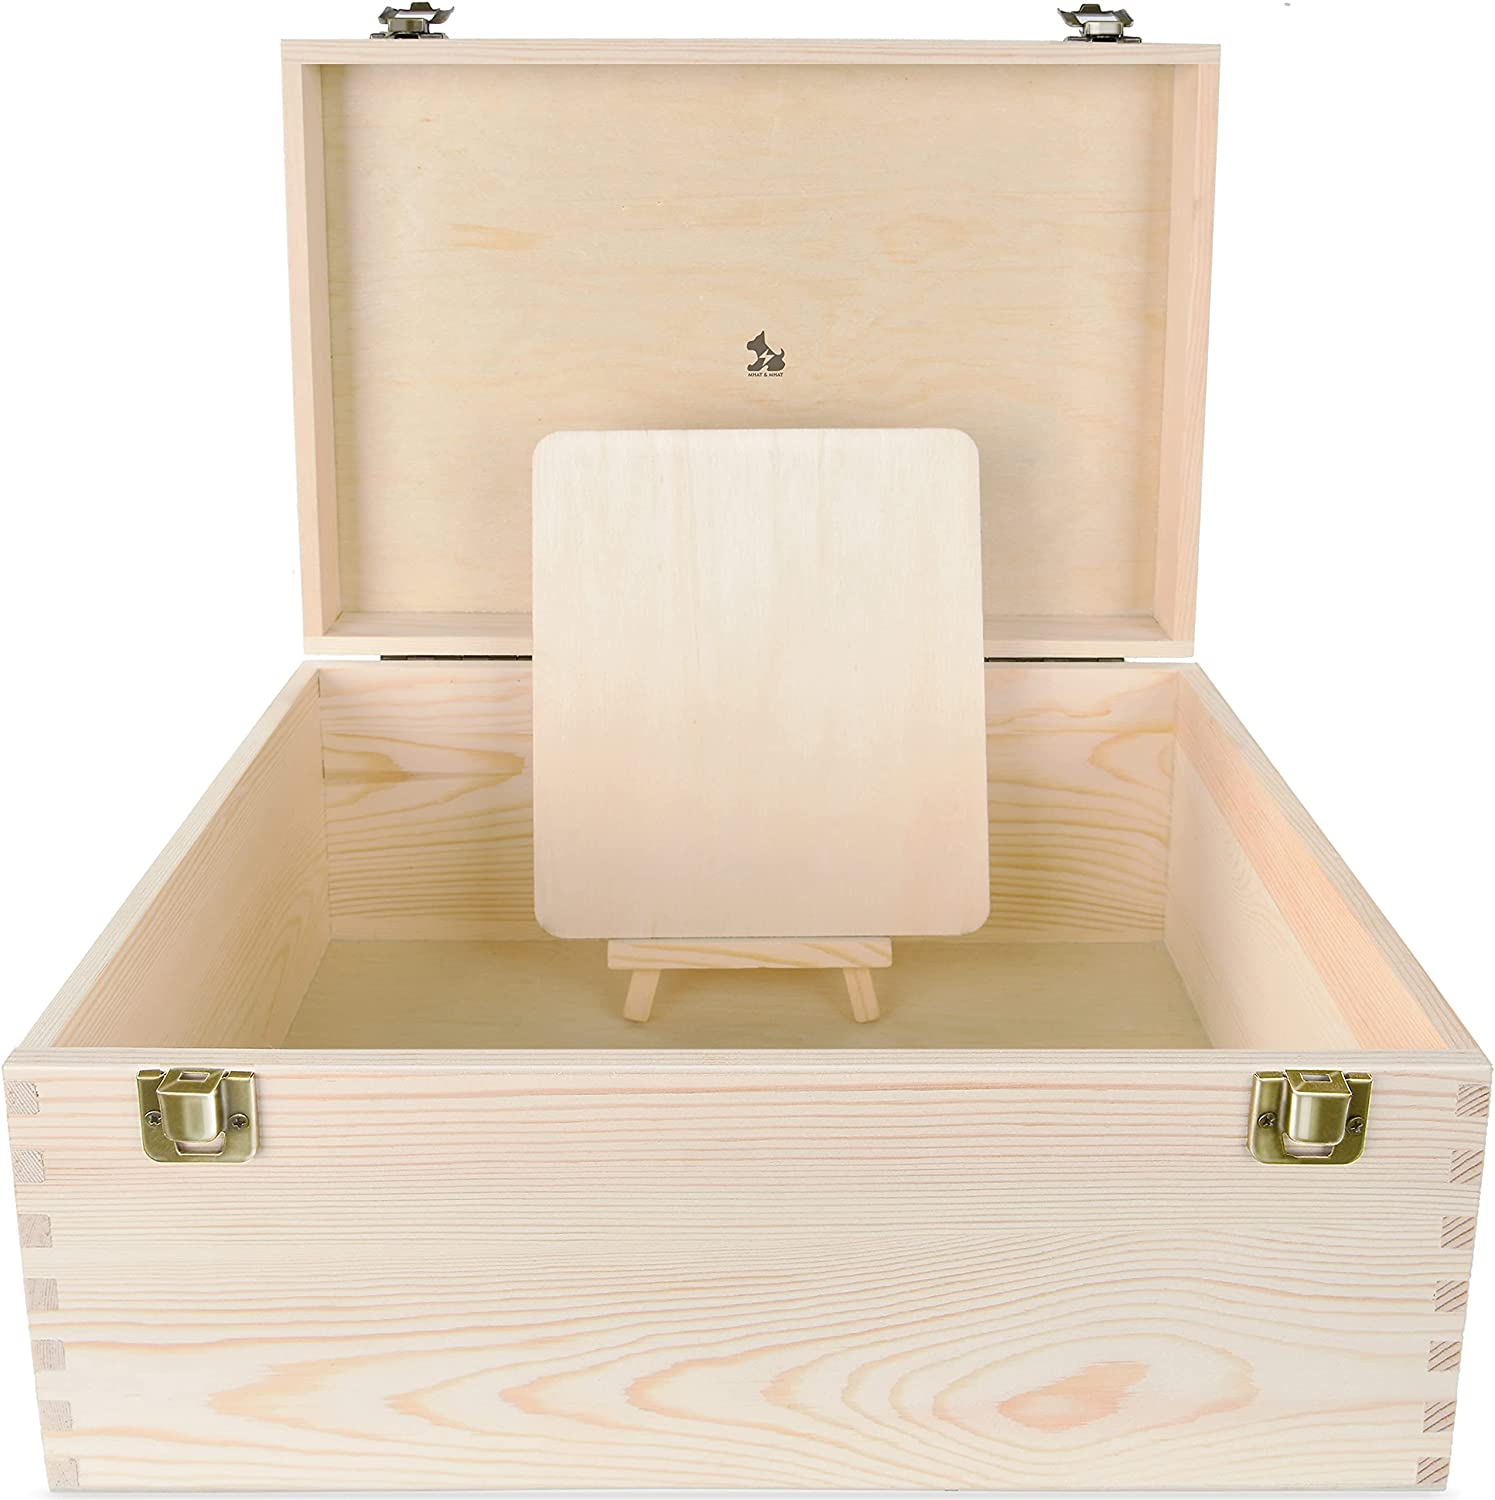 Large Unfinished Pine Wood free Box with Hinged Decorative DIY Max 69% OFF Lid -